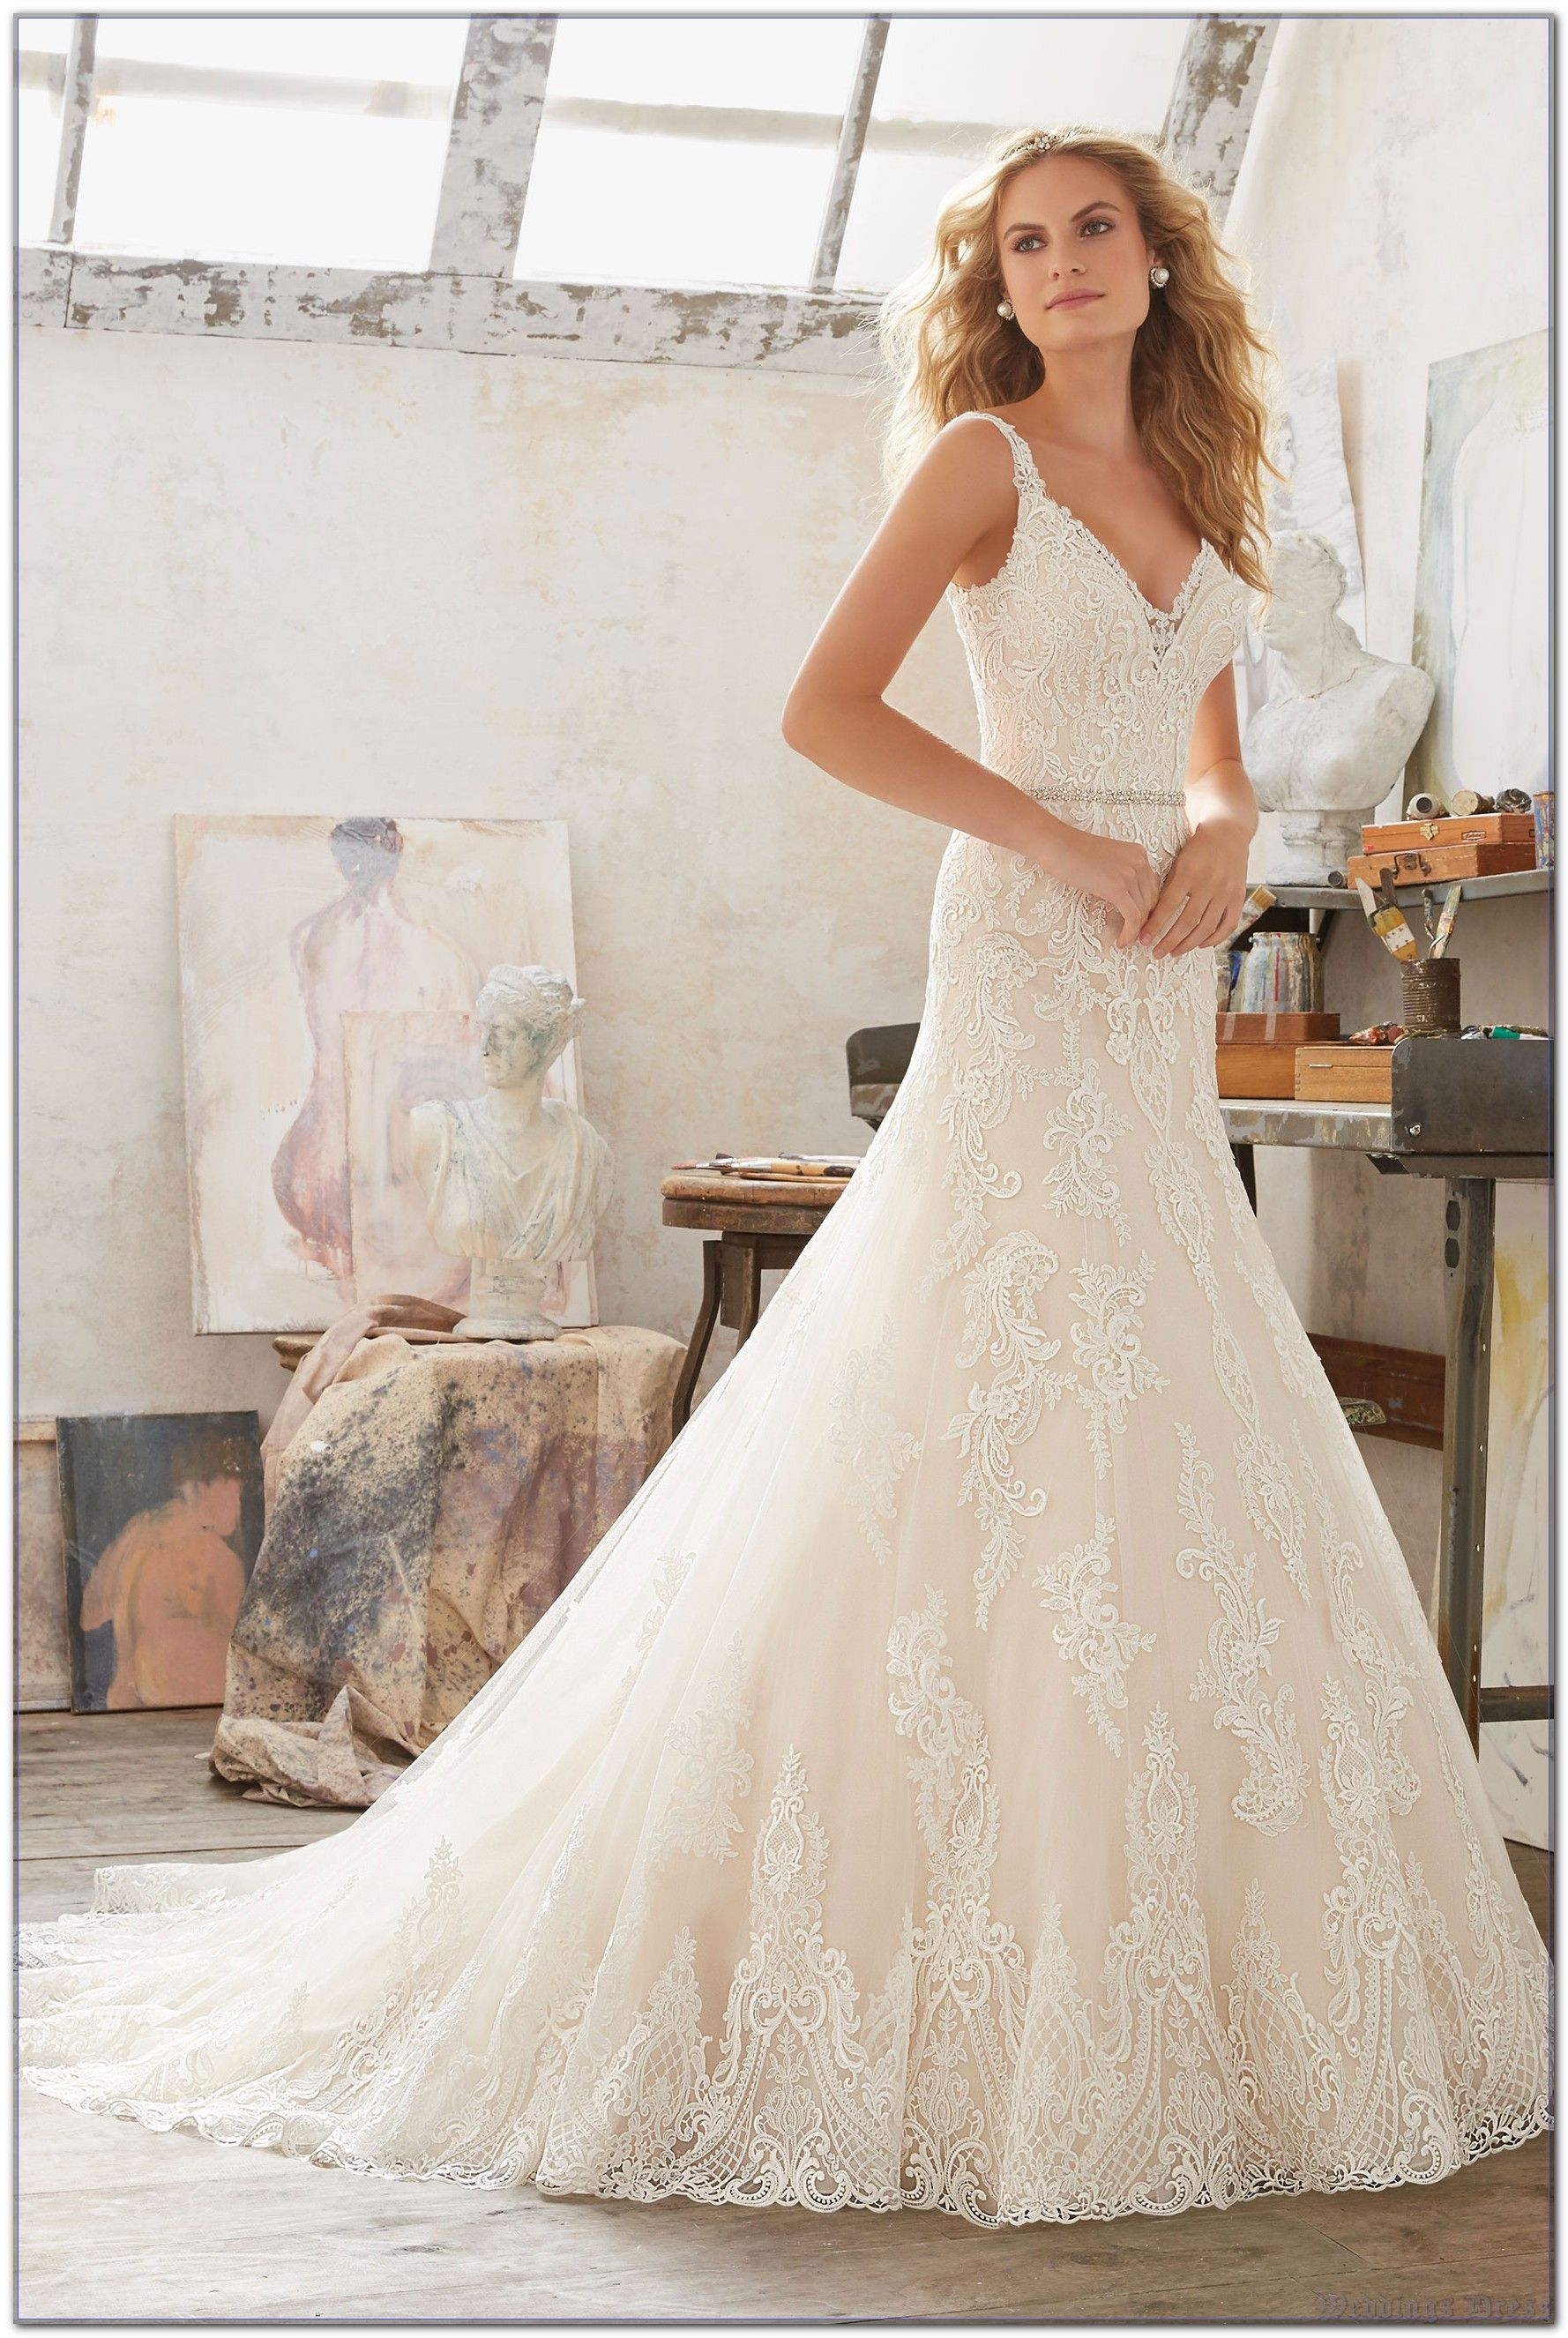 2 Things You Must Know About Weddings Dress